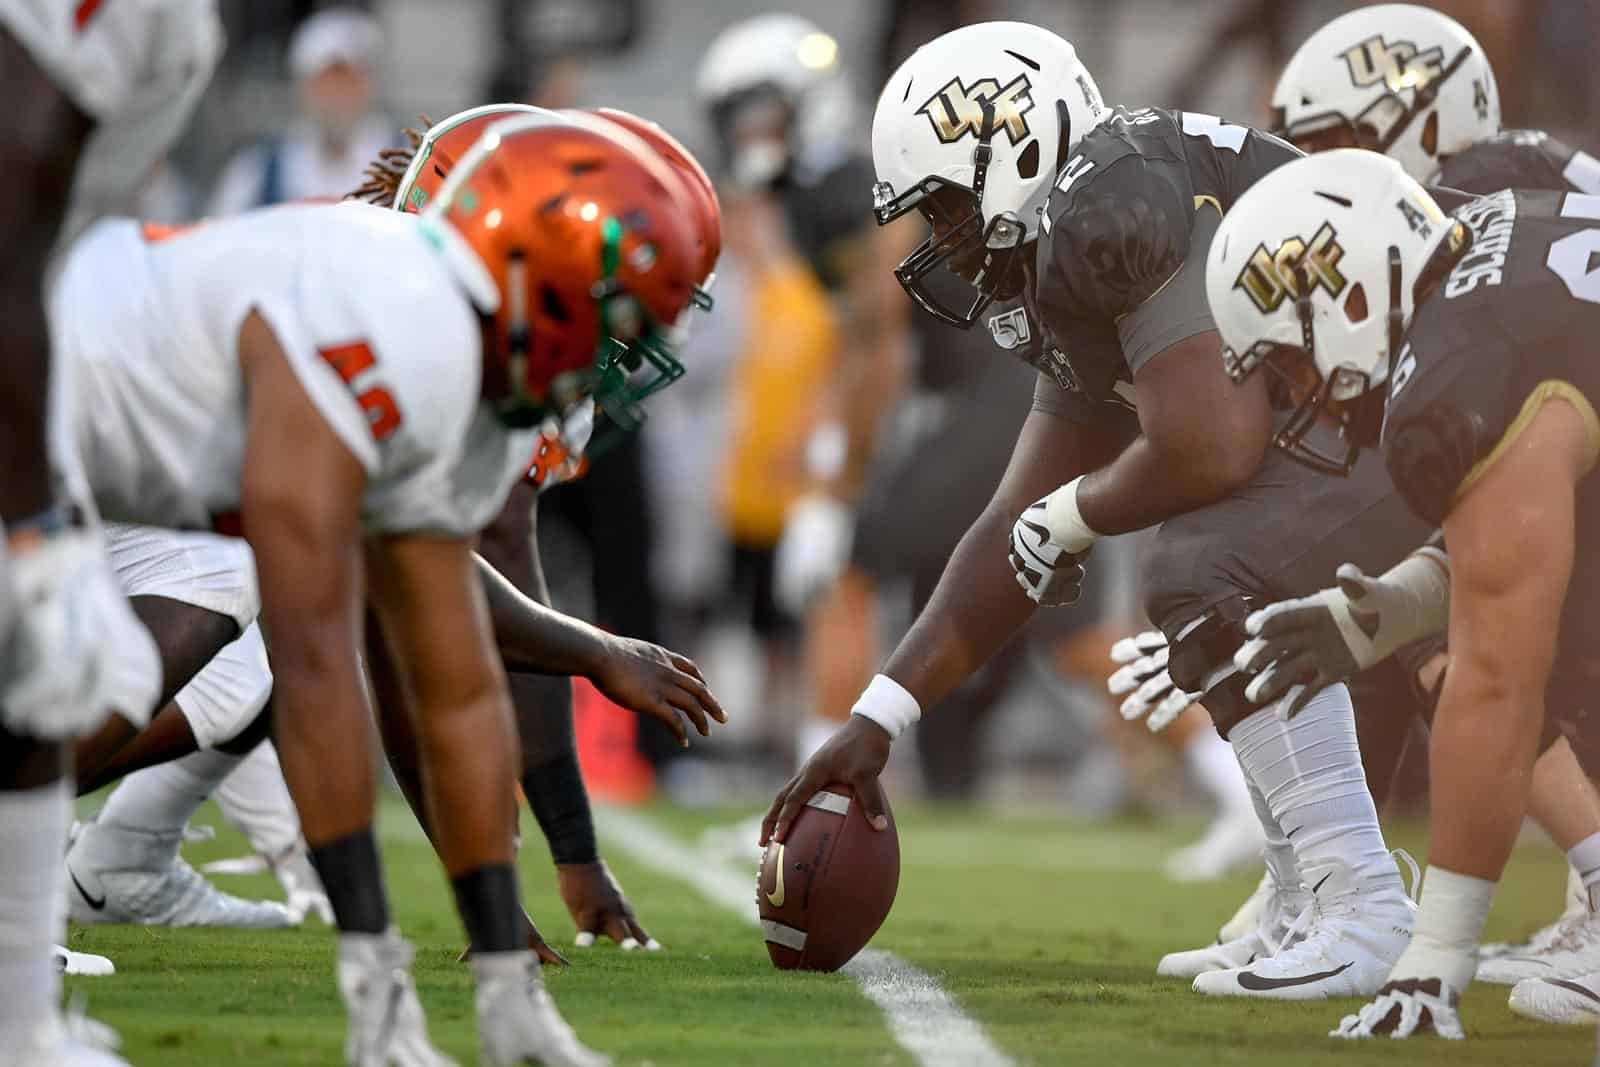 UCF-Florida A&M